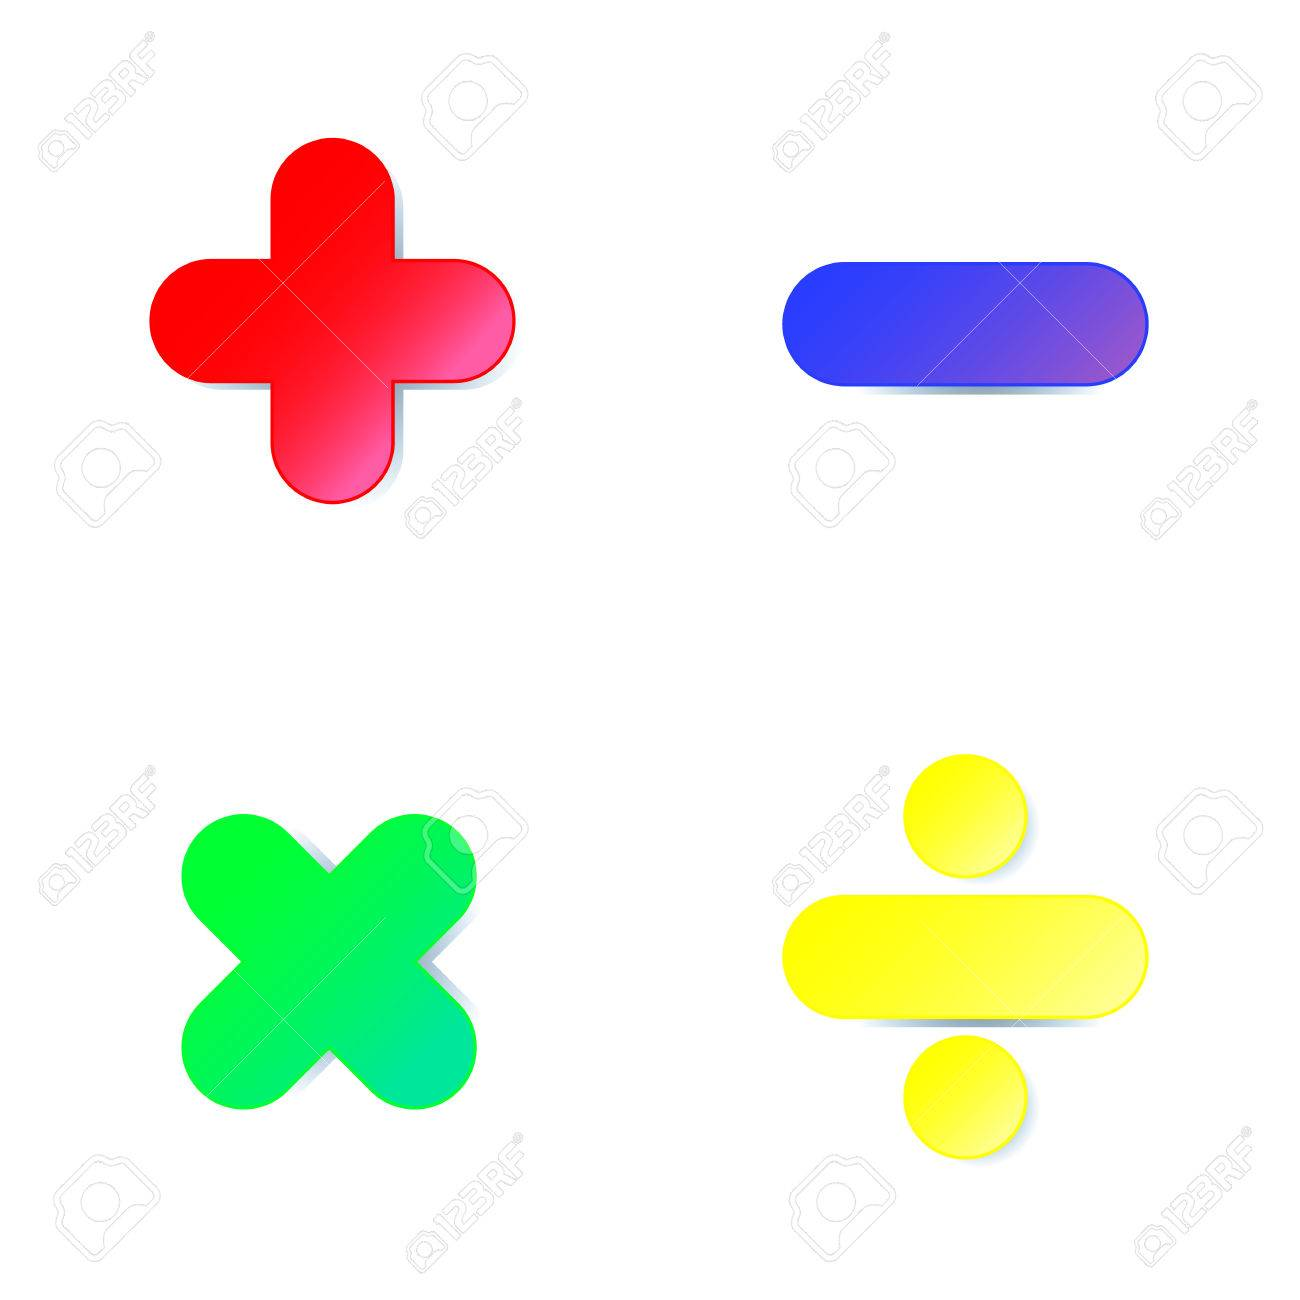 Math symbol : plus,minus,multiply,divide in colorful paper cut on white background - 61101216